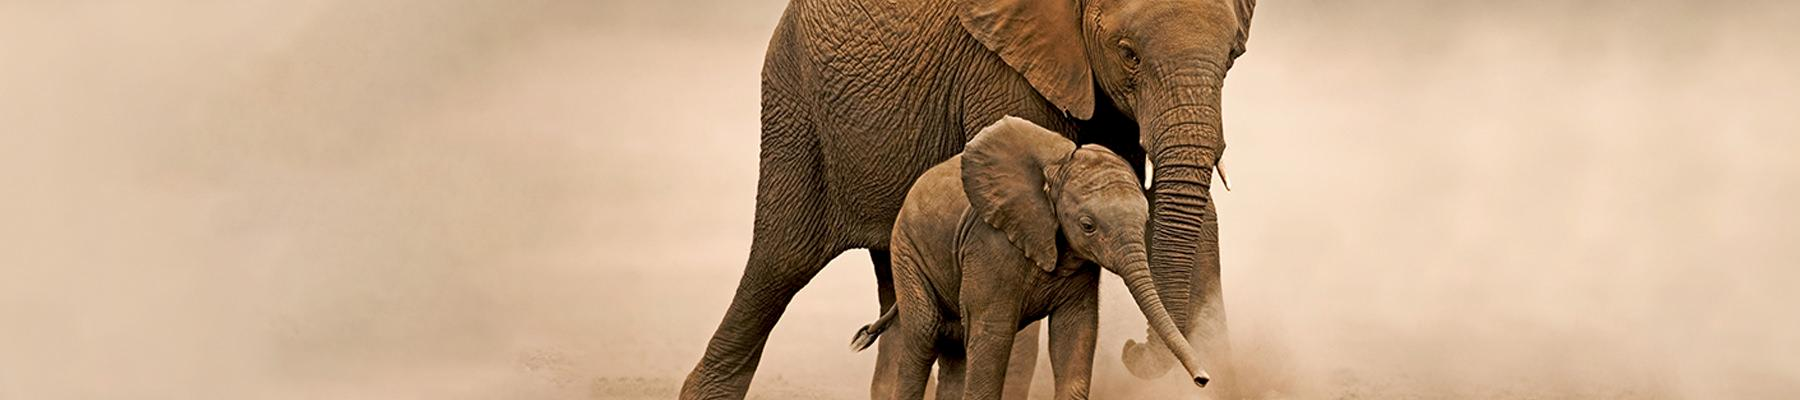 African elephant Loxodonta africana, young calf with adult female in Amboseli National Park, Kenya © Martin Harvey / WWF